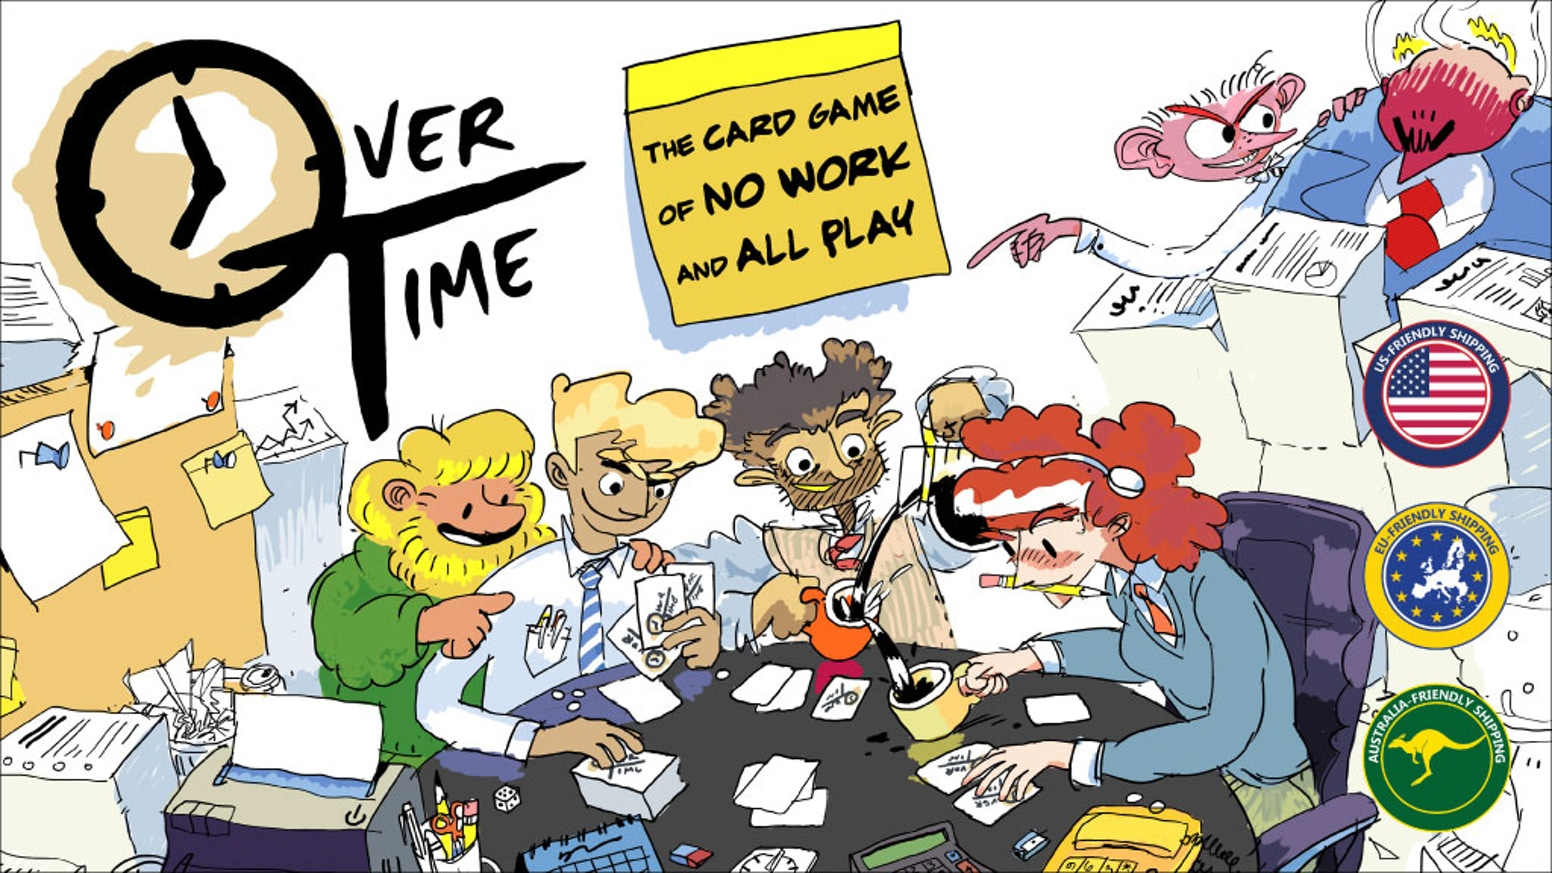 overtime the card game of no work and all play by dažbog games